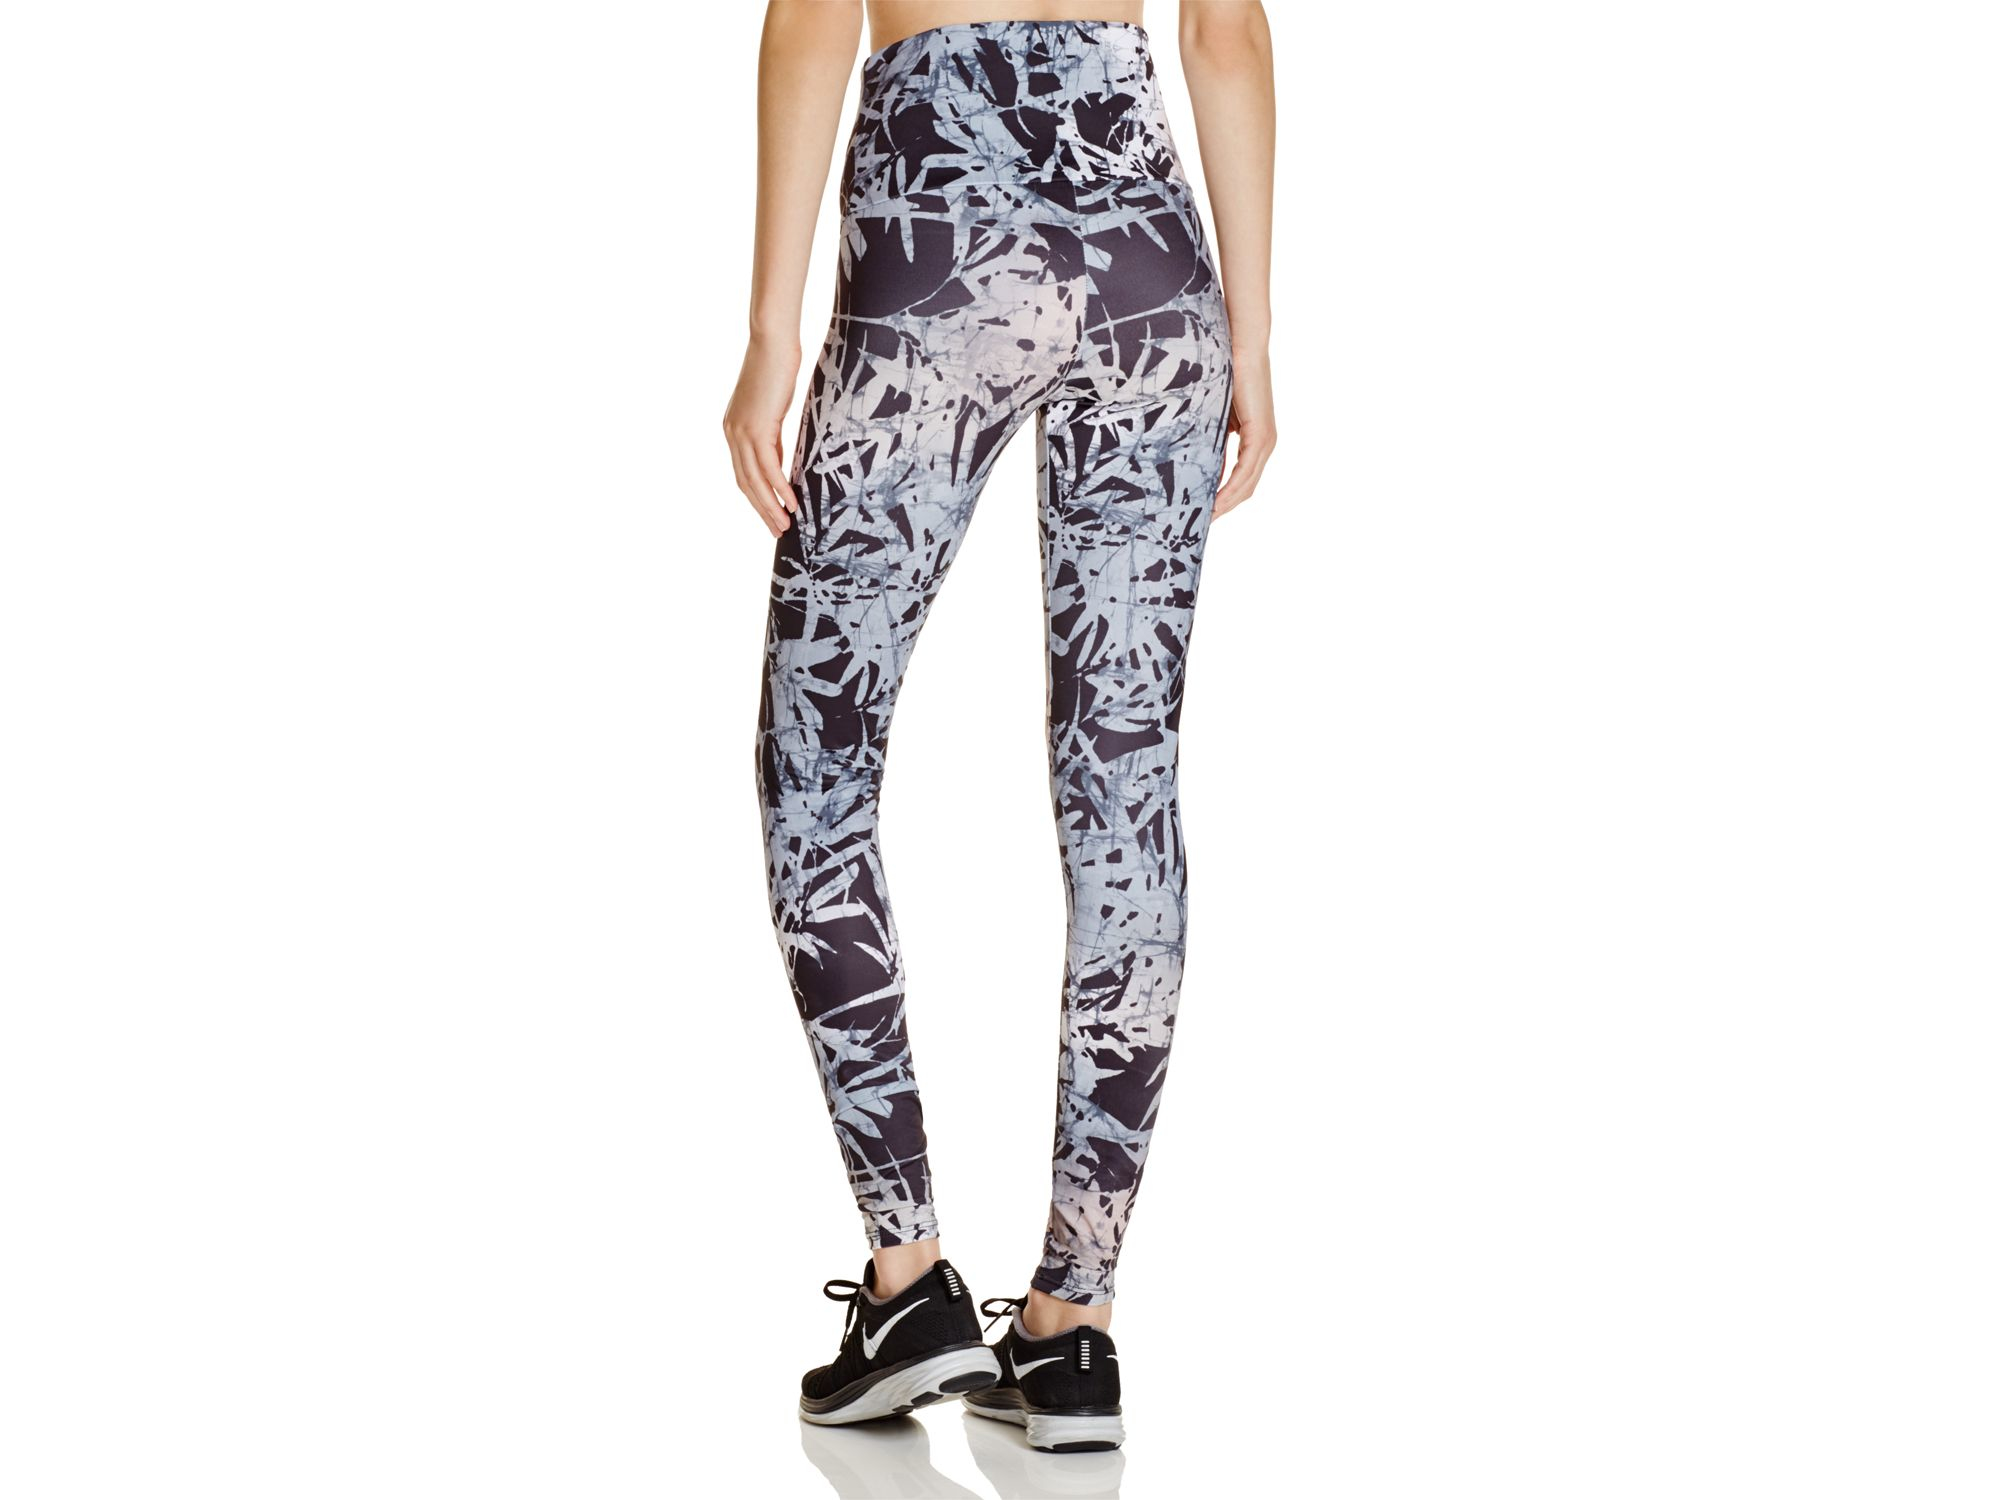 Onzie Bamboo Print High-rise Leggings in Natural | Lyst